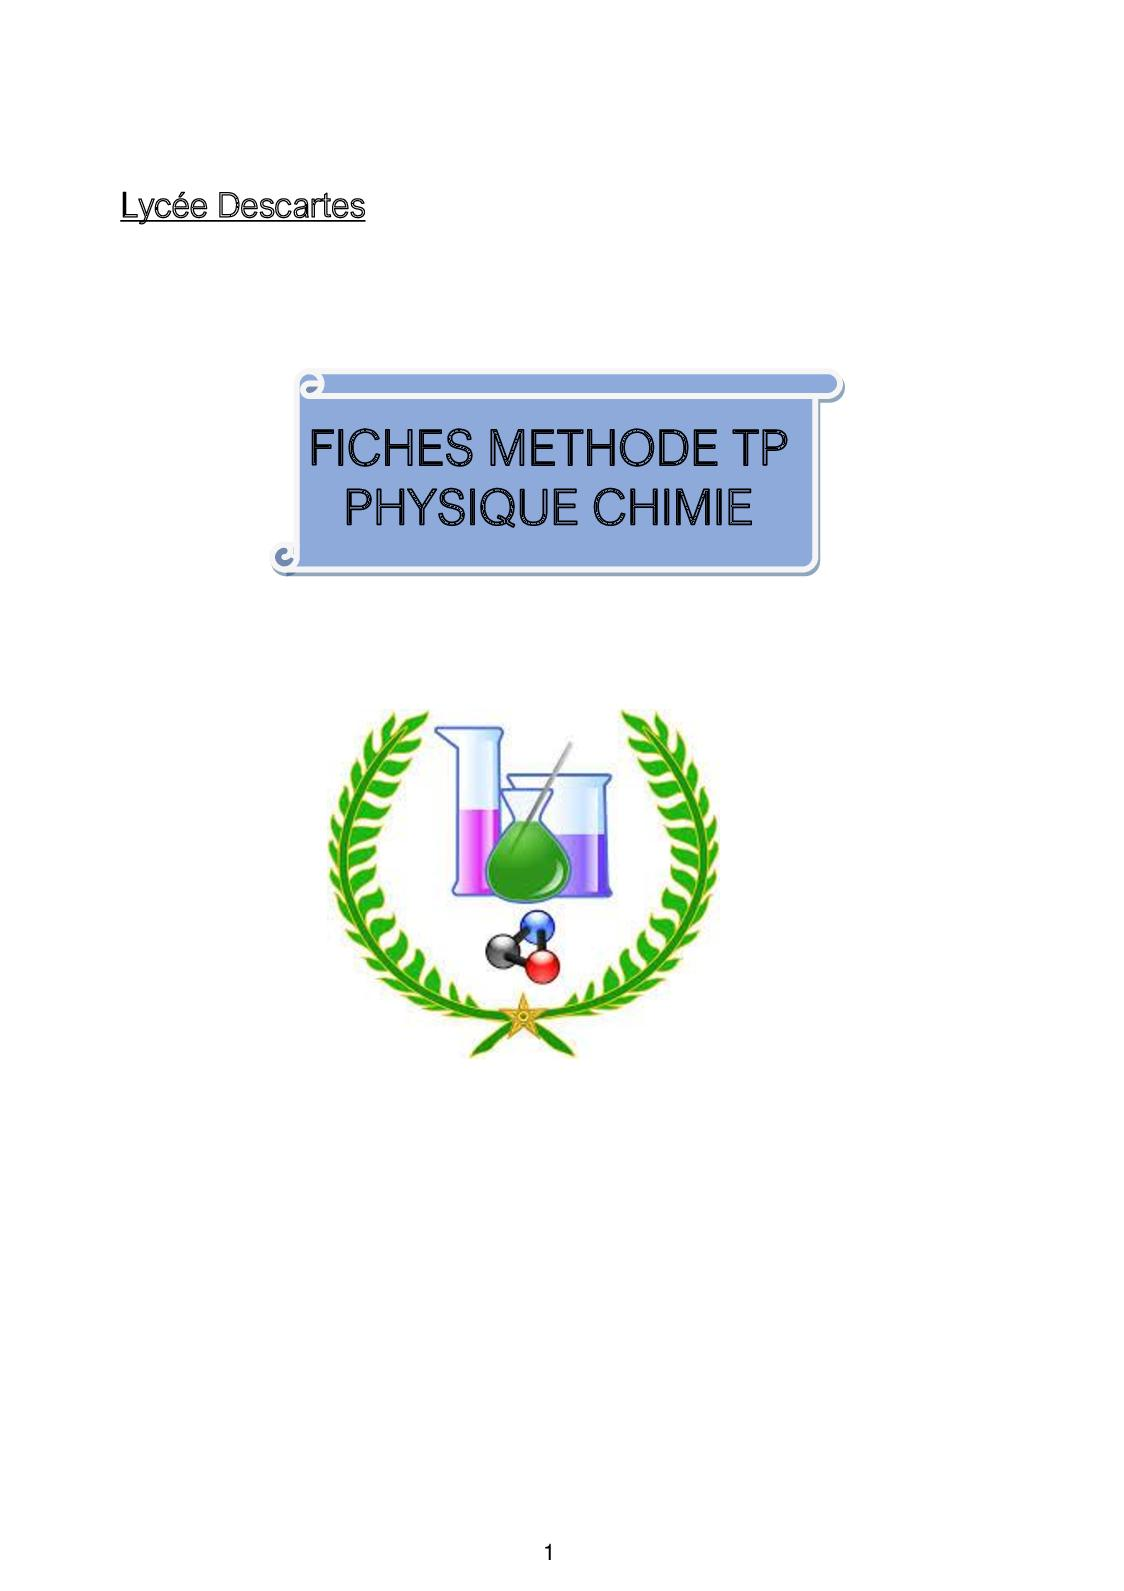 Fiches Methodes Physique Chimie